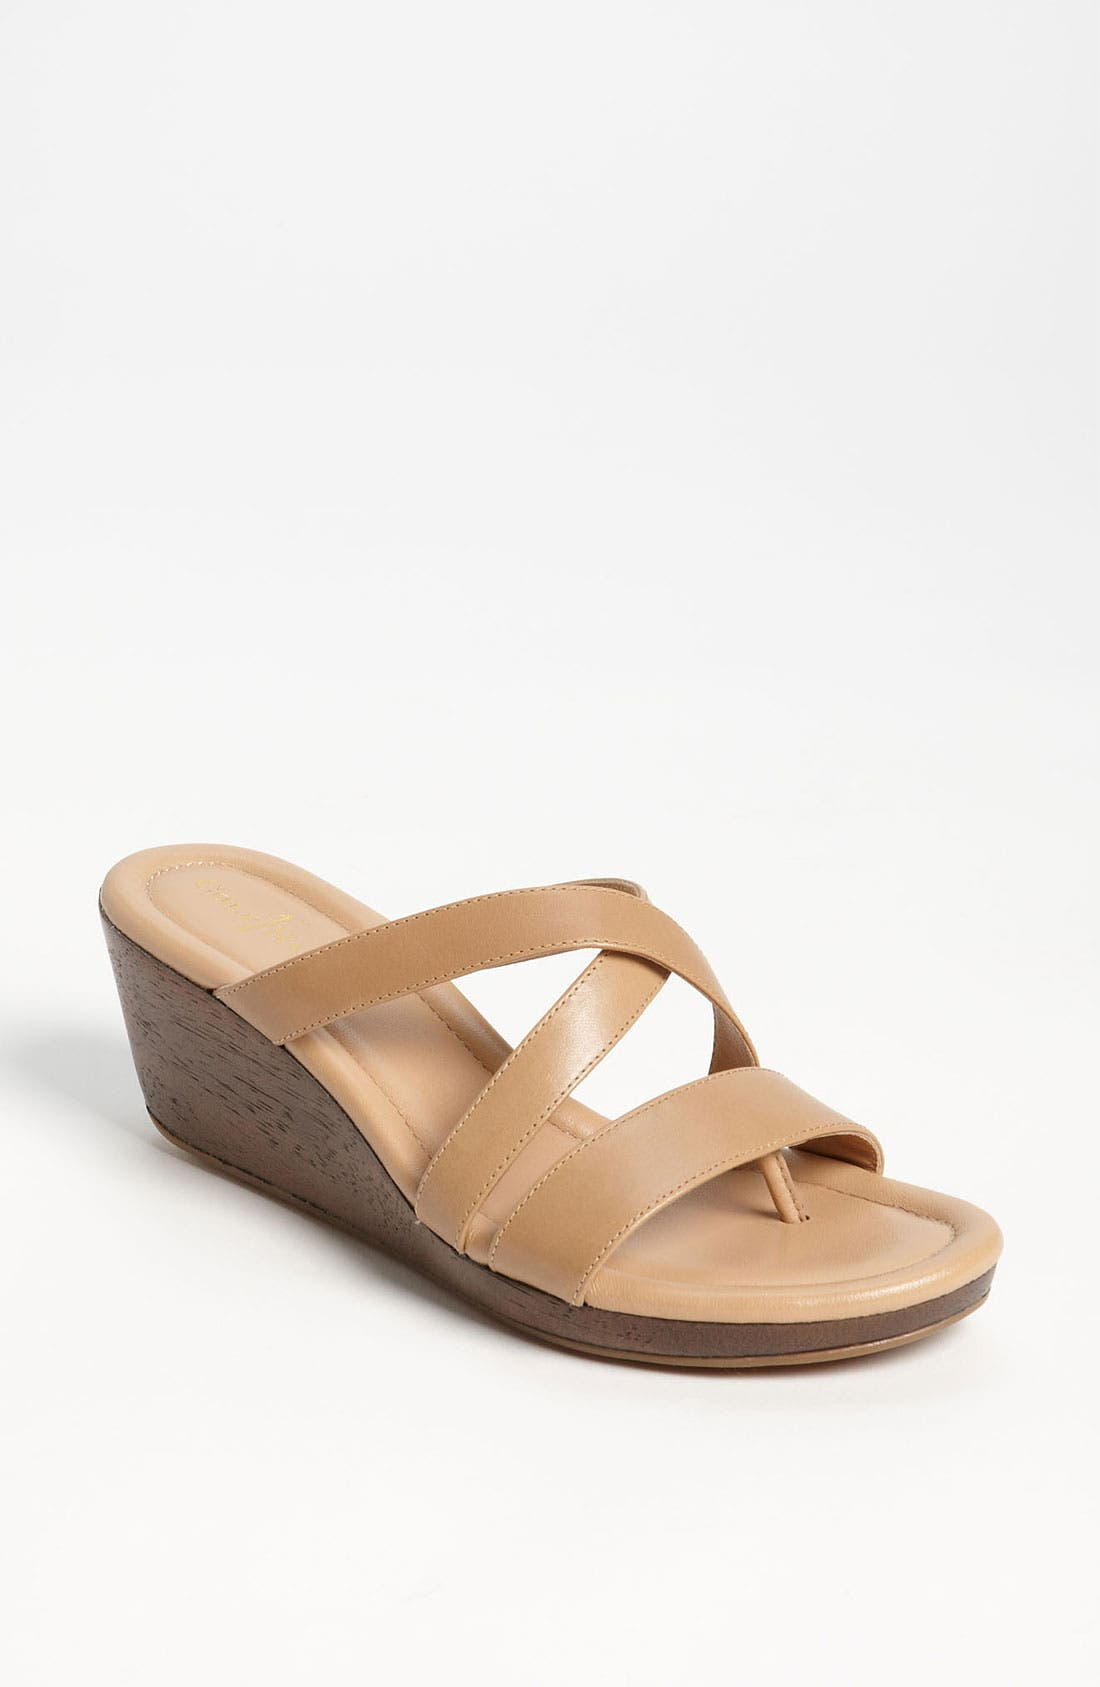 Alternate Image 1 Selected - Cole Haan 'Suzette' Sandal